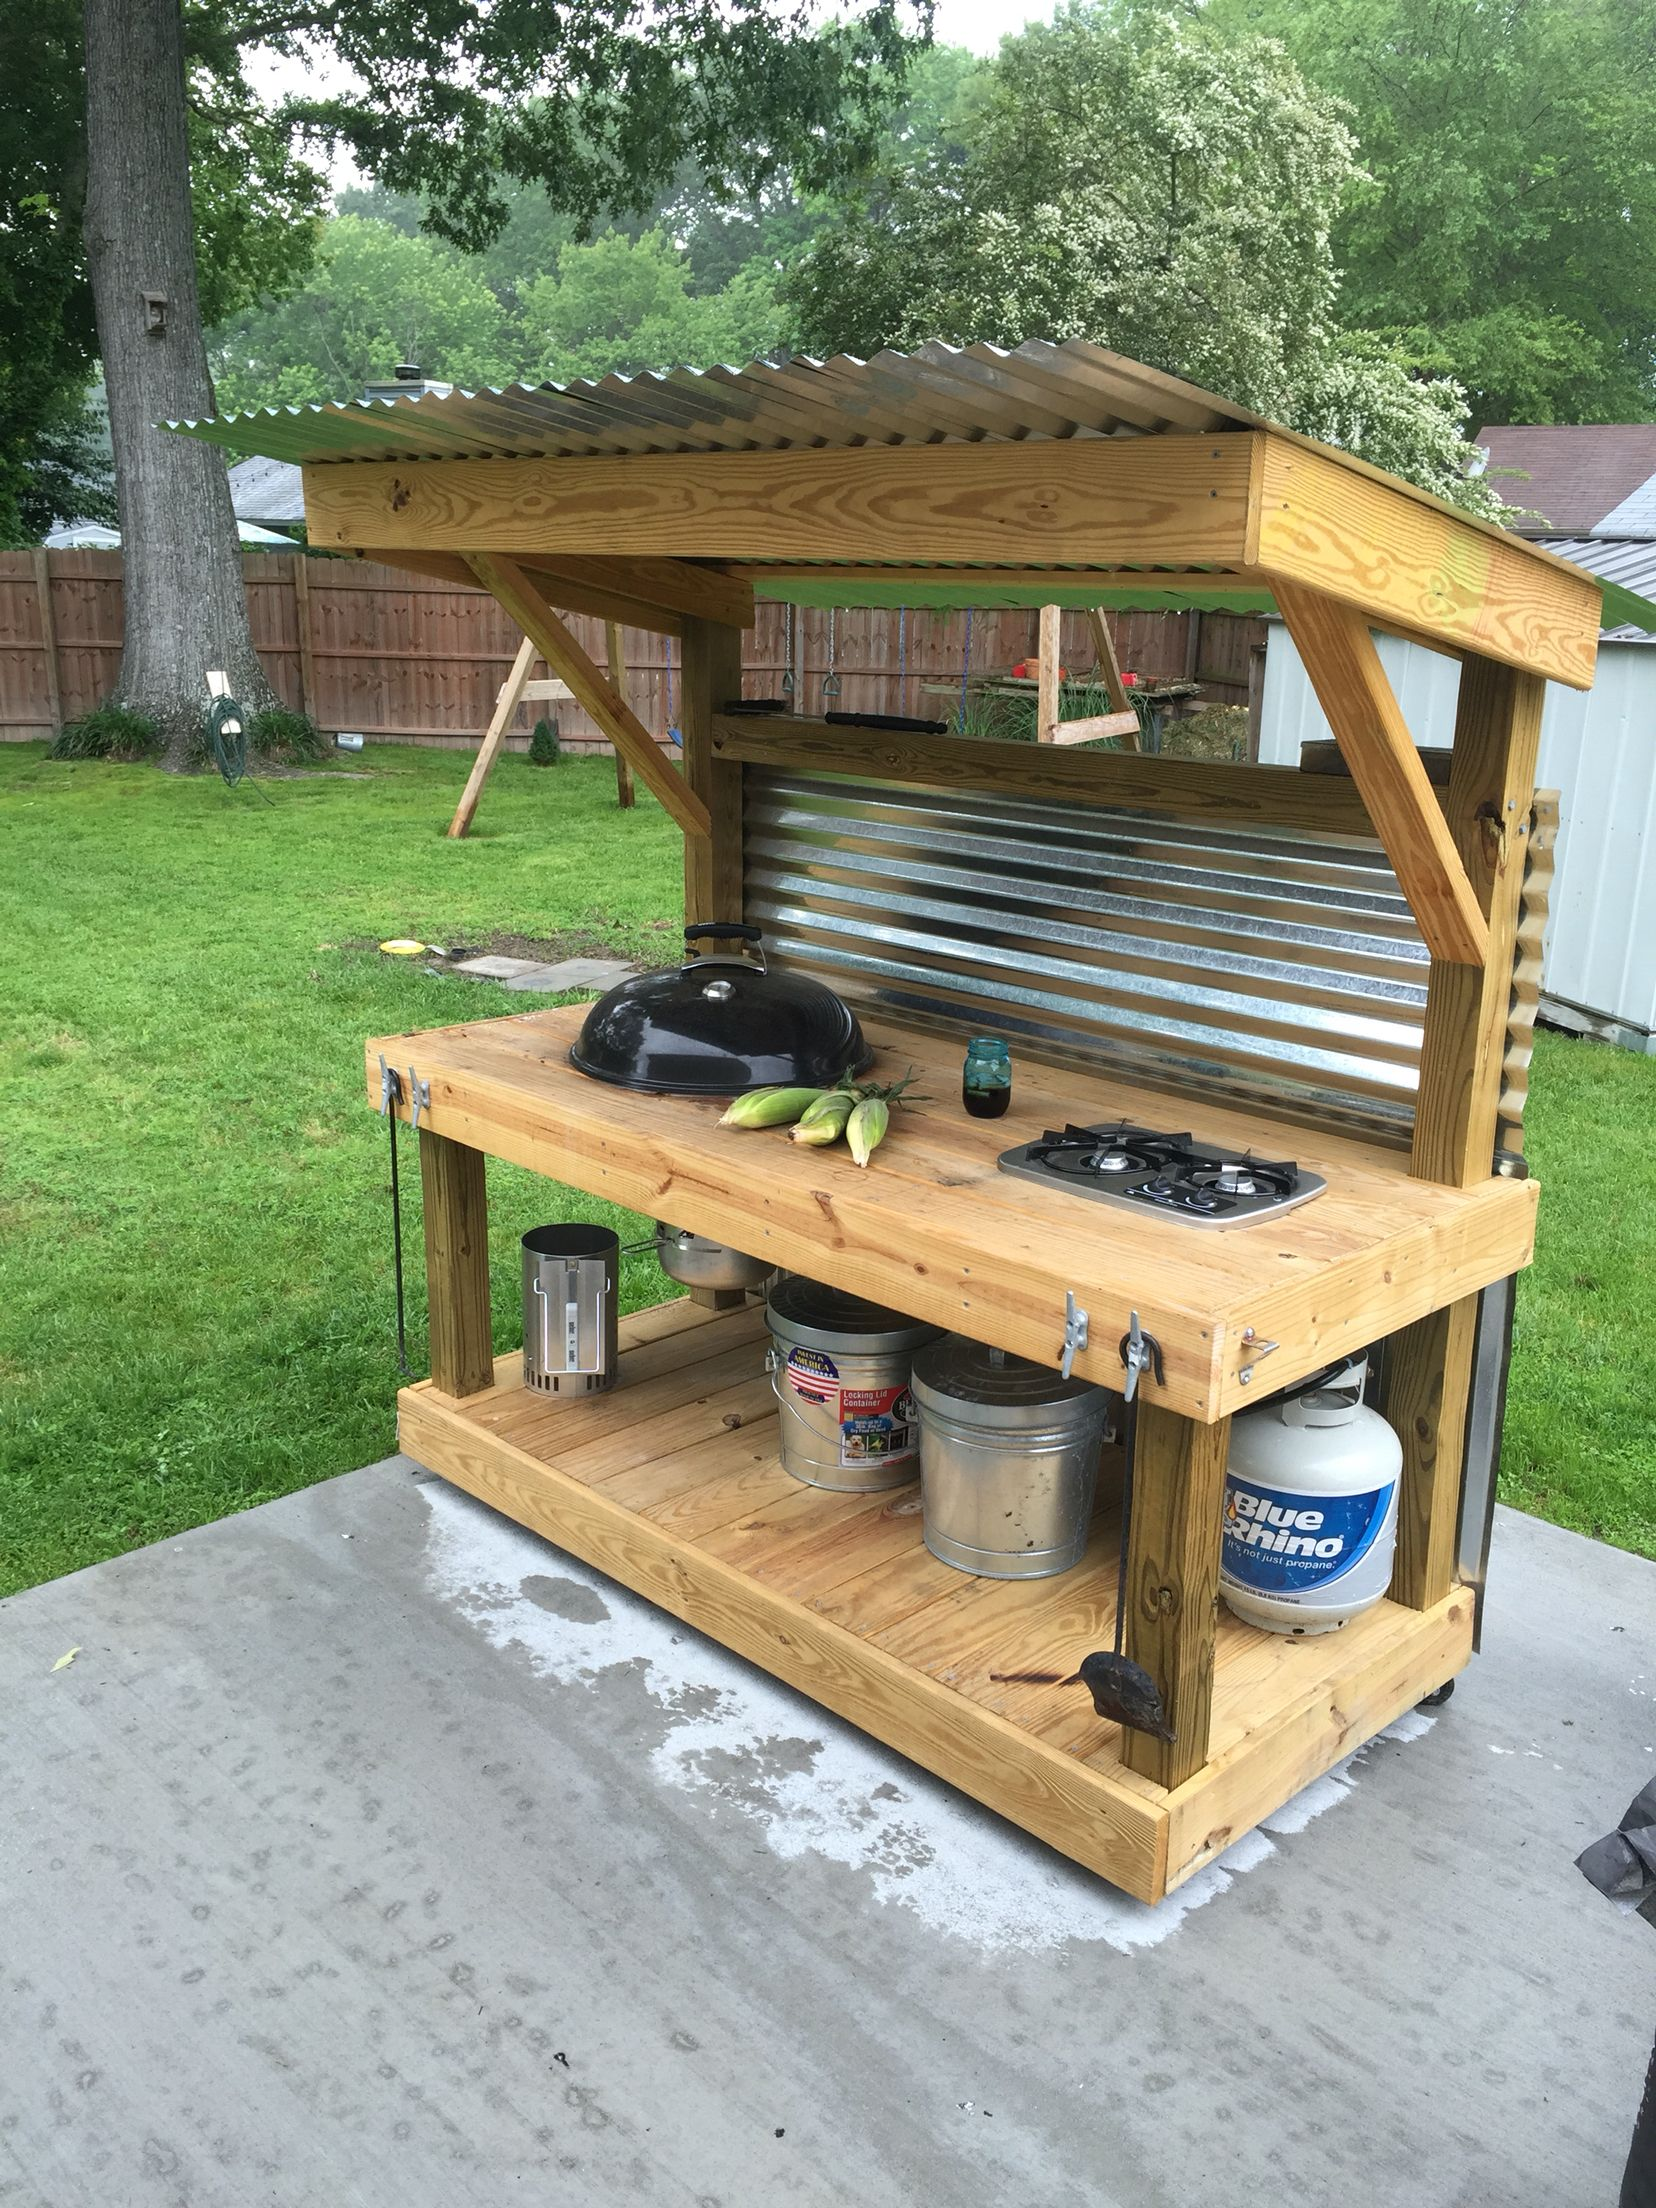 weber kettle homemade cart table the bbq brethren forums. Black Bedroom Furniture Sets. Home Design Ideas